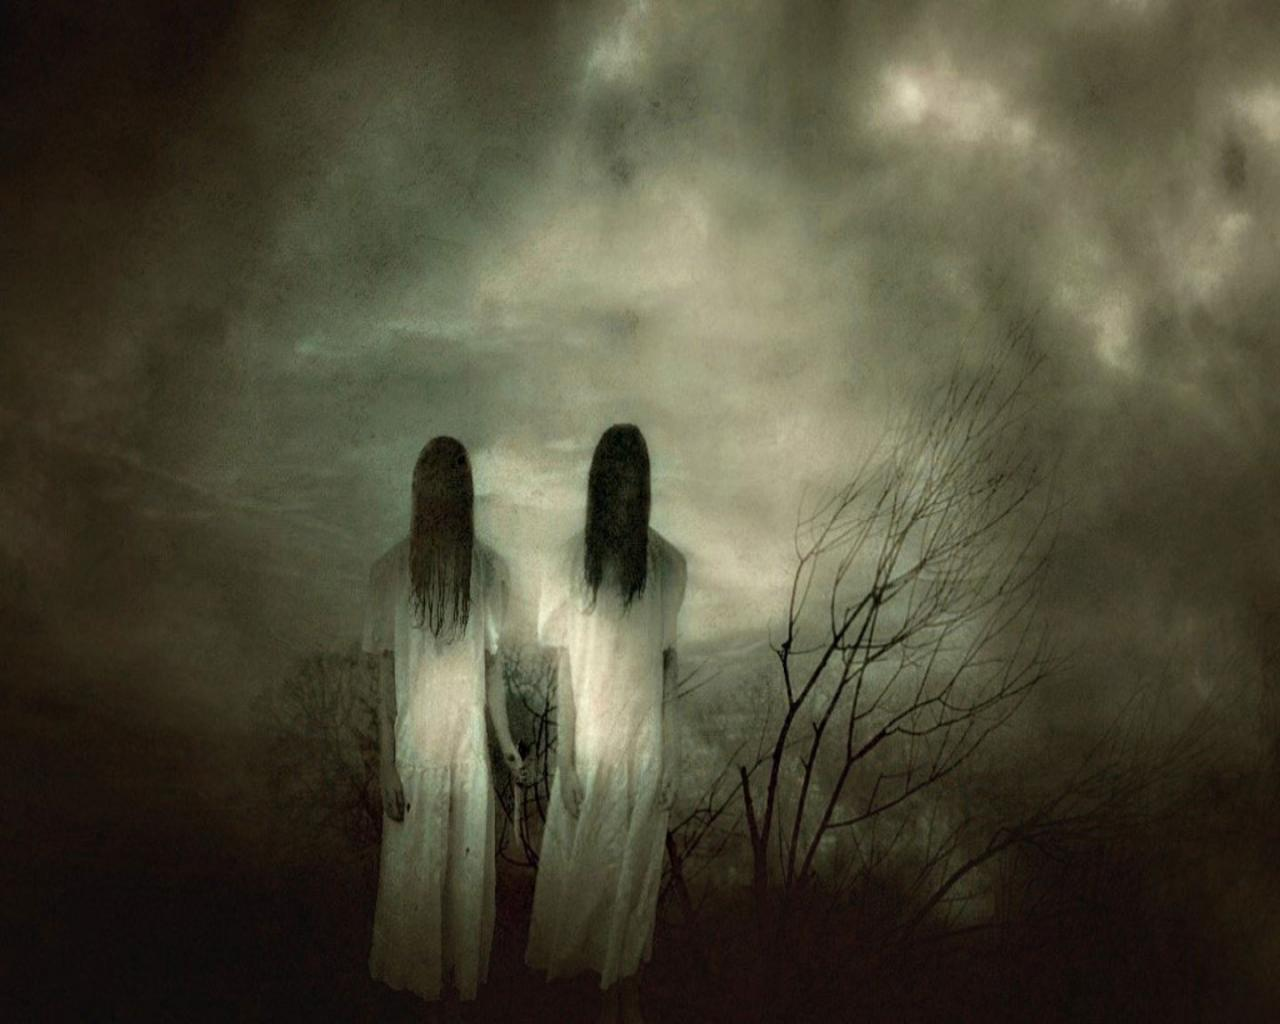 Scary Images of Real Ghosts HD wallpaper background 1280x1024